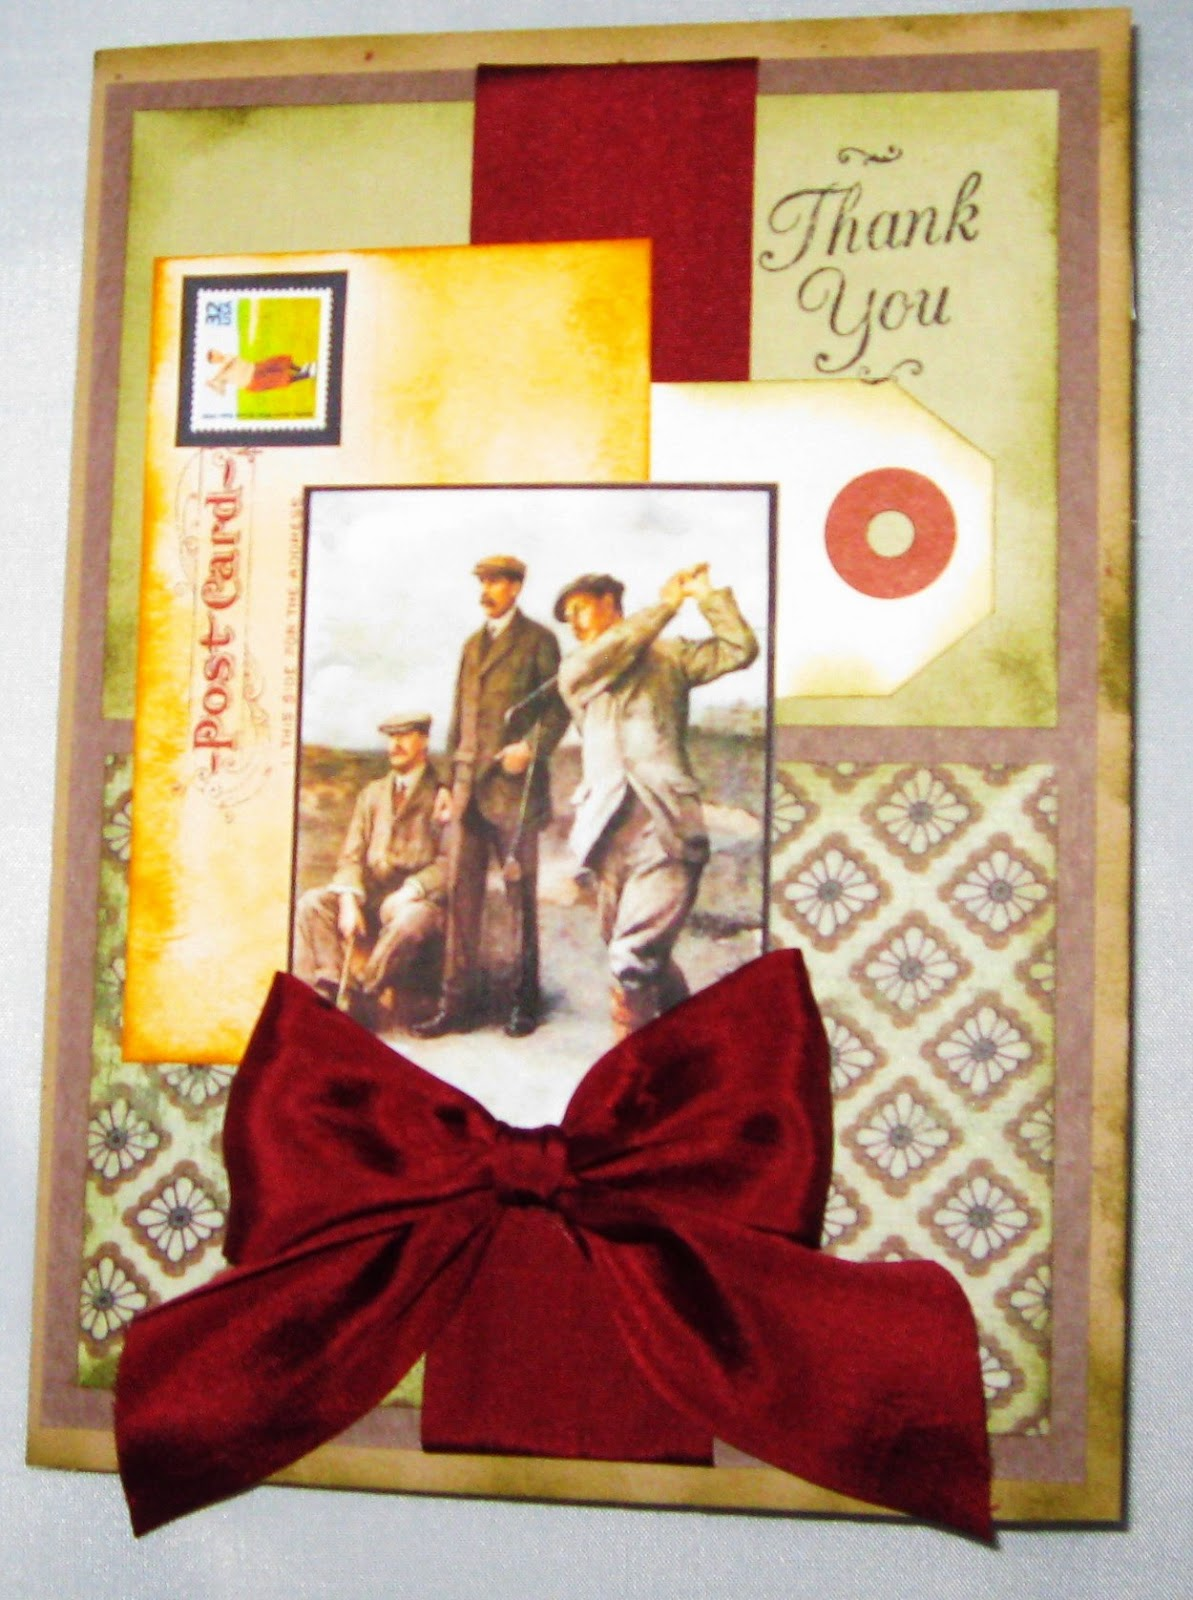 Cream colored cardstock paper studio - First Of All Let Me Thank Polly S Paper Studio From Whom I Cased This Card I Was So Totally Impressed With It As I Scrolling Pinterest For Thank You Card